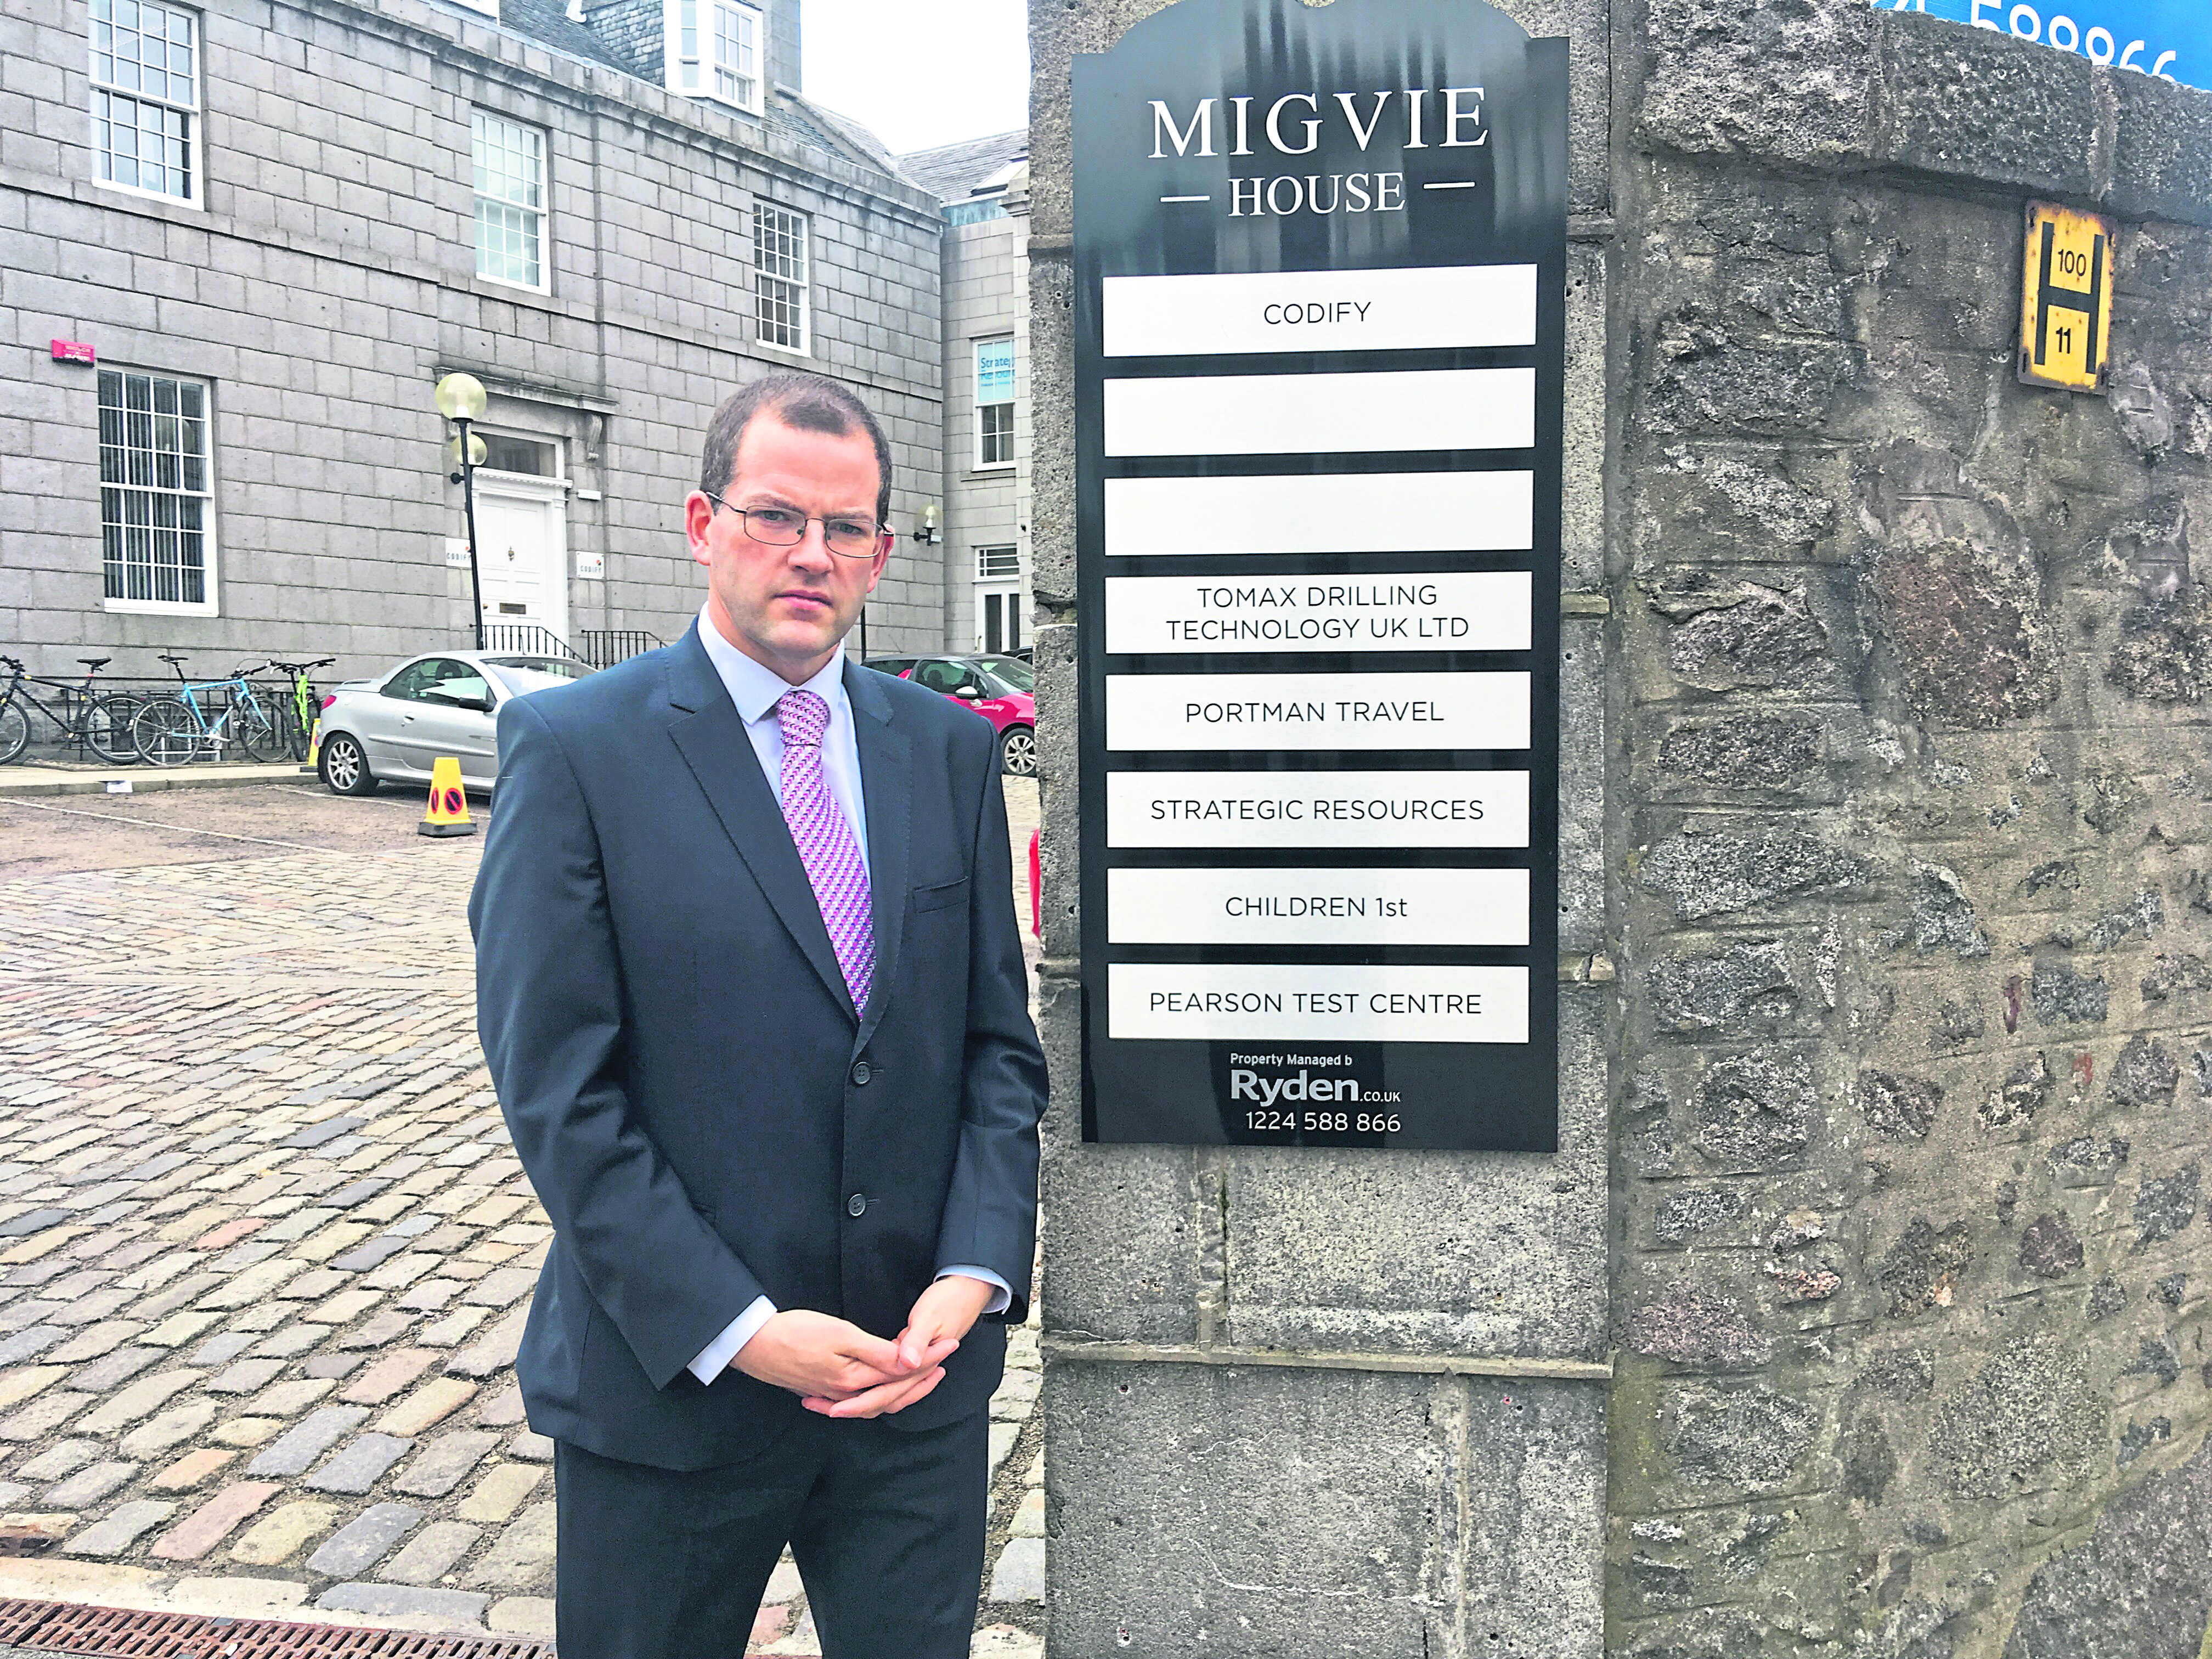 Mark McDonald outside Migvie House.  Children 1st story. Pic by Stephen Walsh 22/03/2019